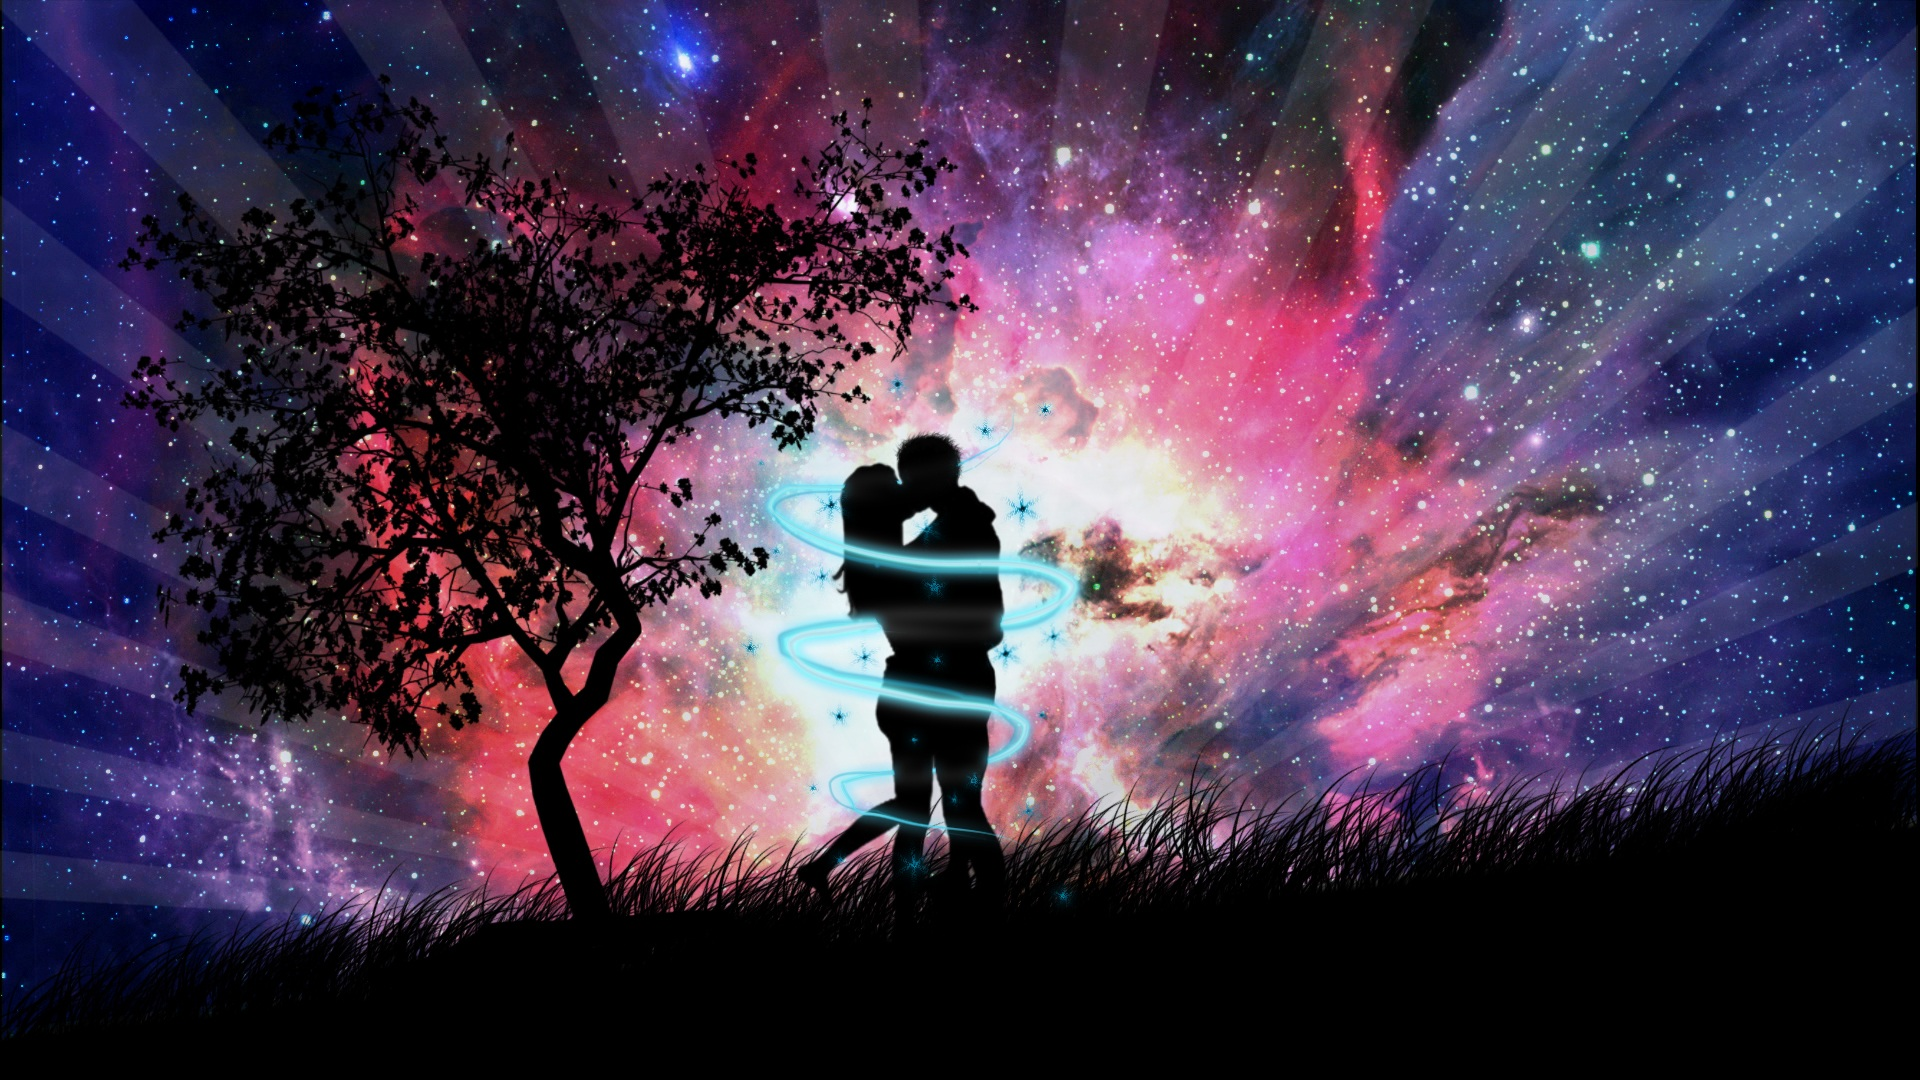 Anime Love Couple In The Night 711079 Wallpaper Wallpaper